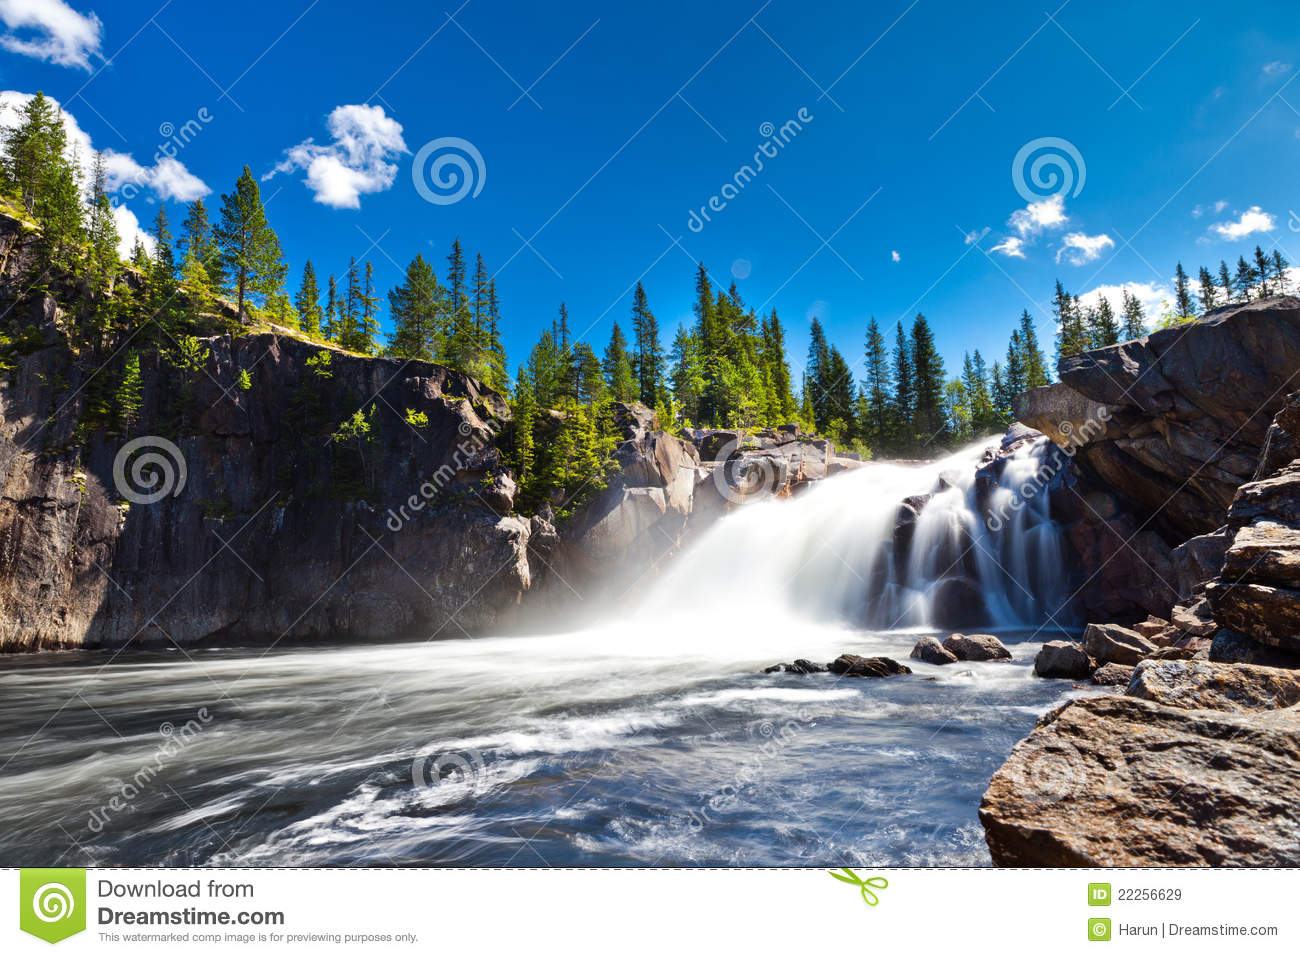 Kamin Clipart Waterfall In Countryside Royalty Free Stock Images - Image